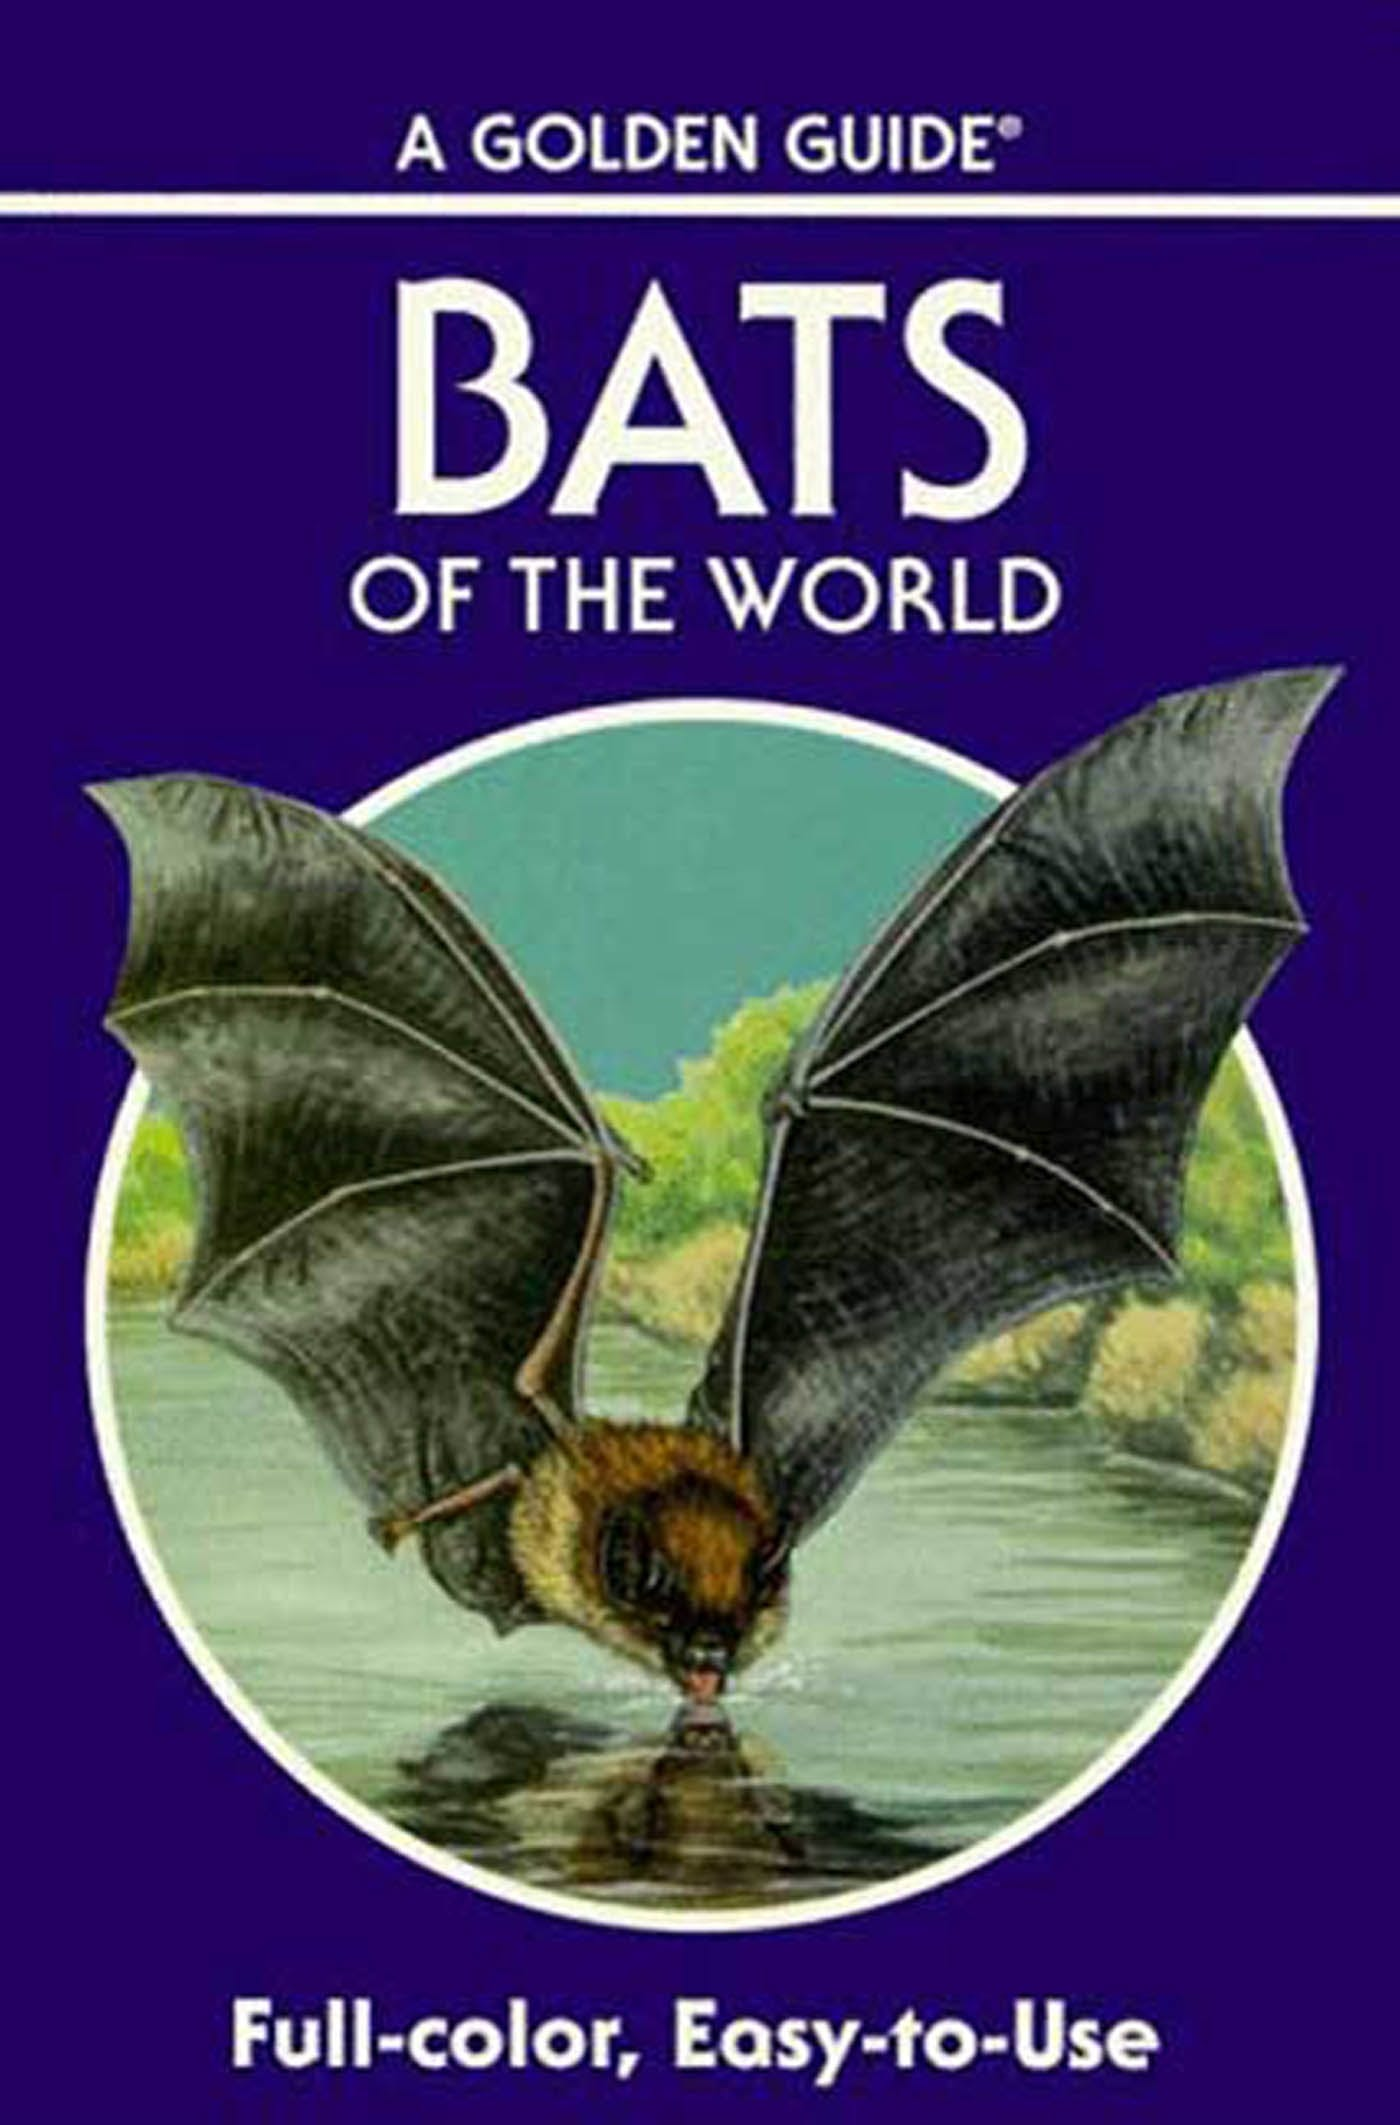 Image of Bats of the World